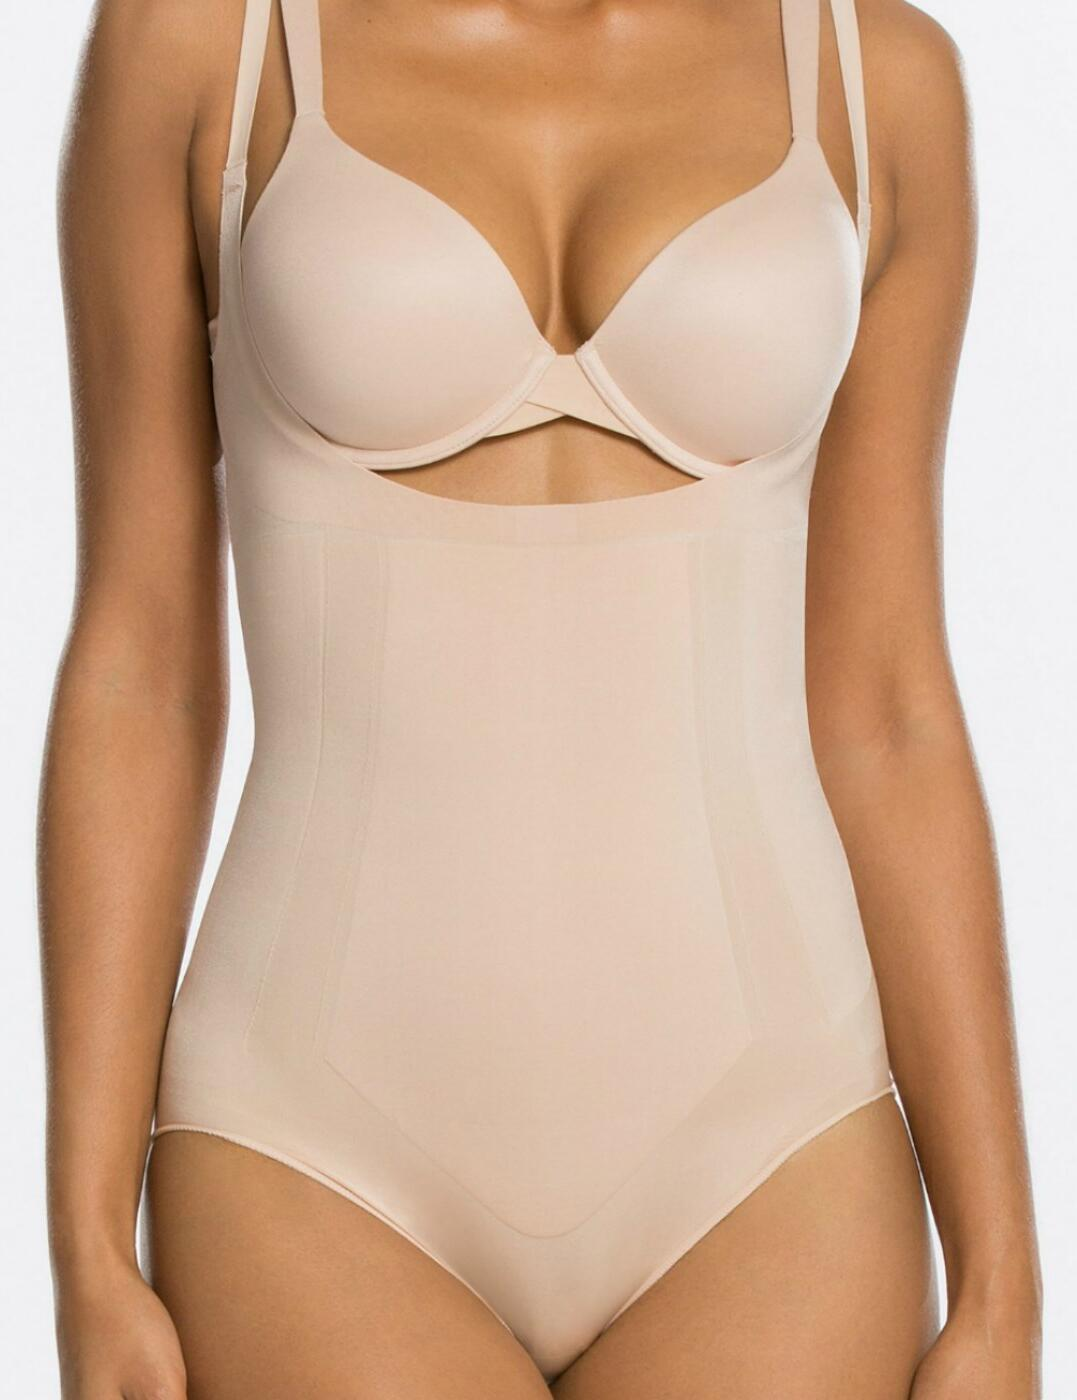 10129R Spanx Oncore Open Bust Panty Bodysuit - 10129R Soft Nude